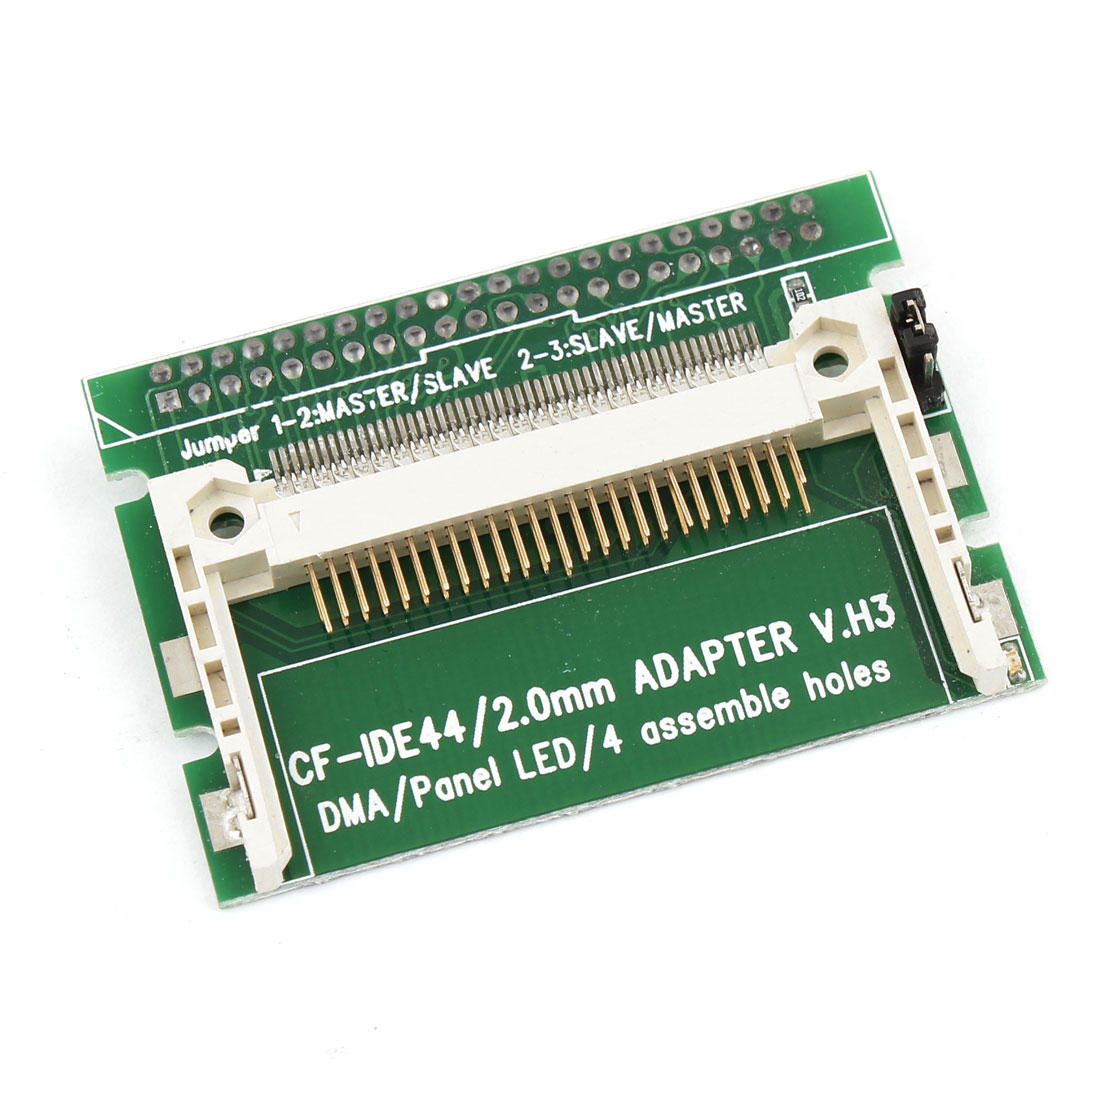 DMA Support M/F Master/Slave CF-IDE44 2.0mm Adapter for Notebook PDA